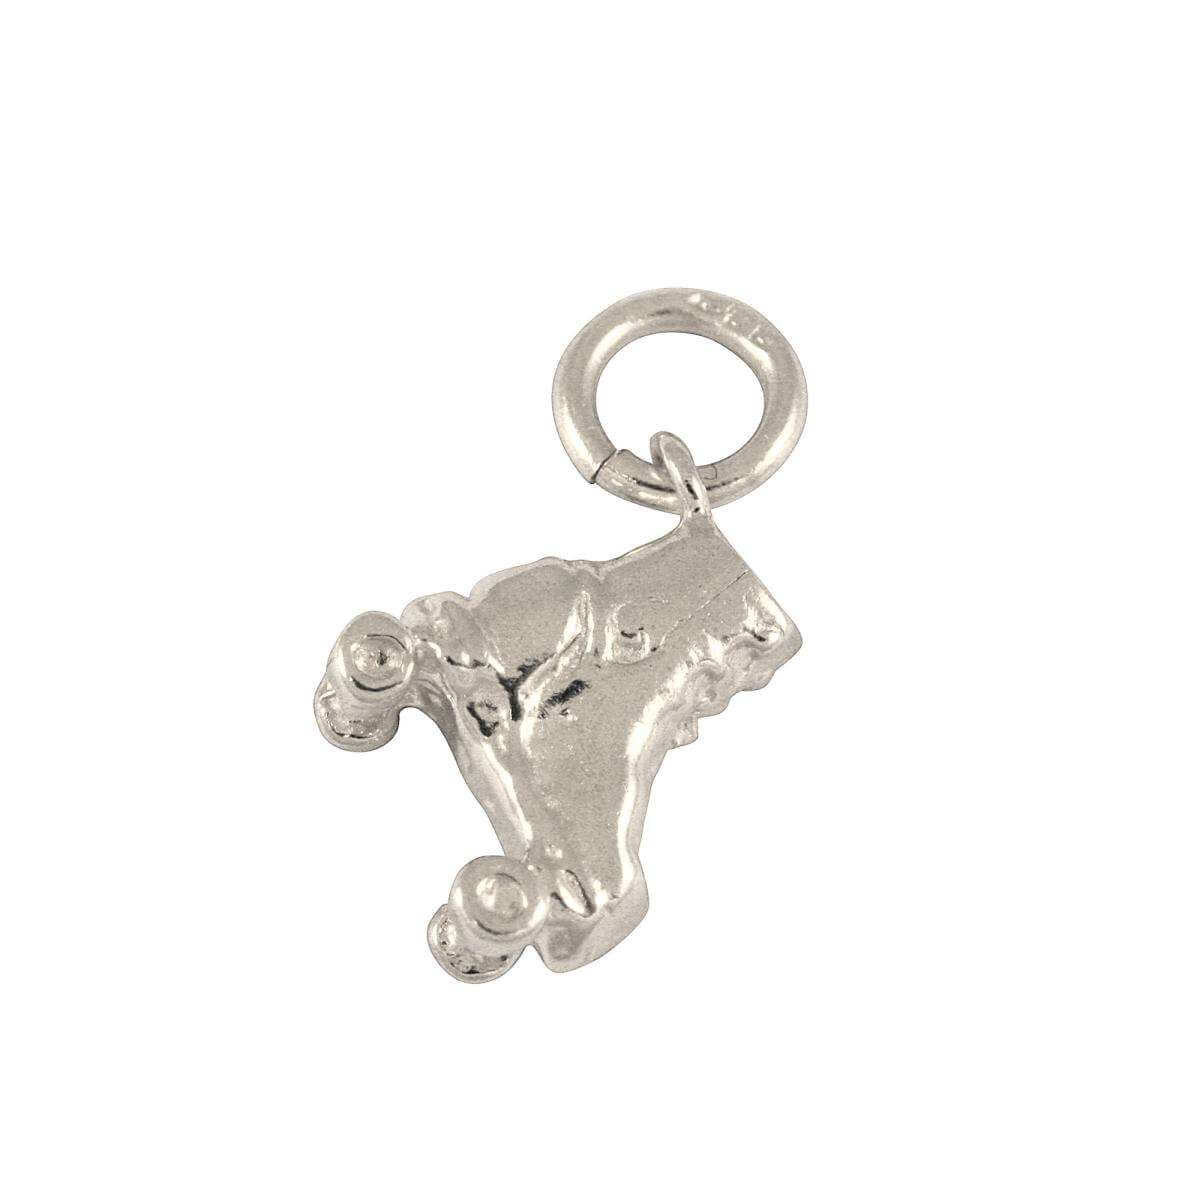 9ct White Gold Roller Skate Charm